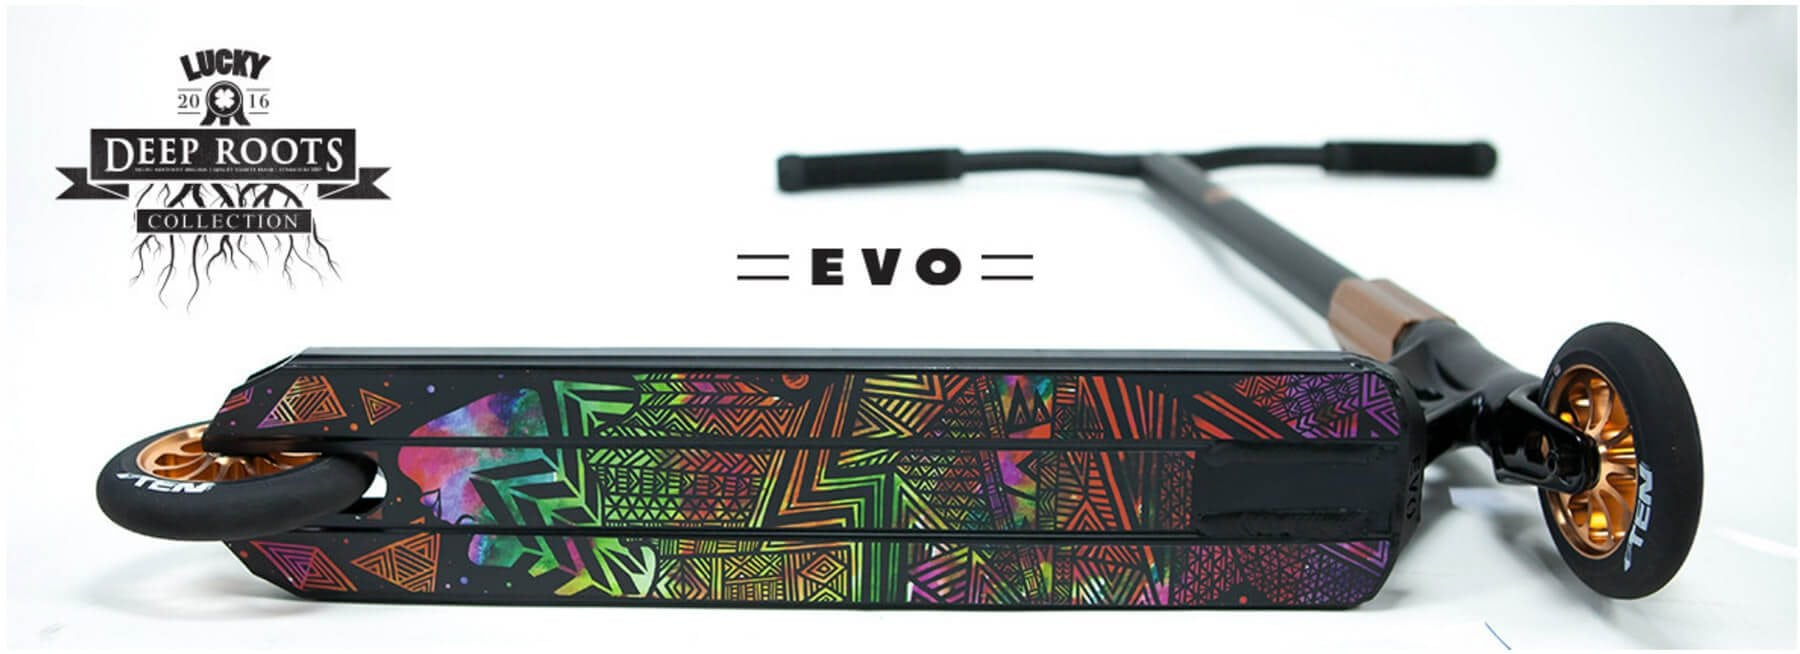 Lucky Evo Complete Pro Scooter Available Now At MyProScooter